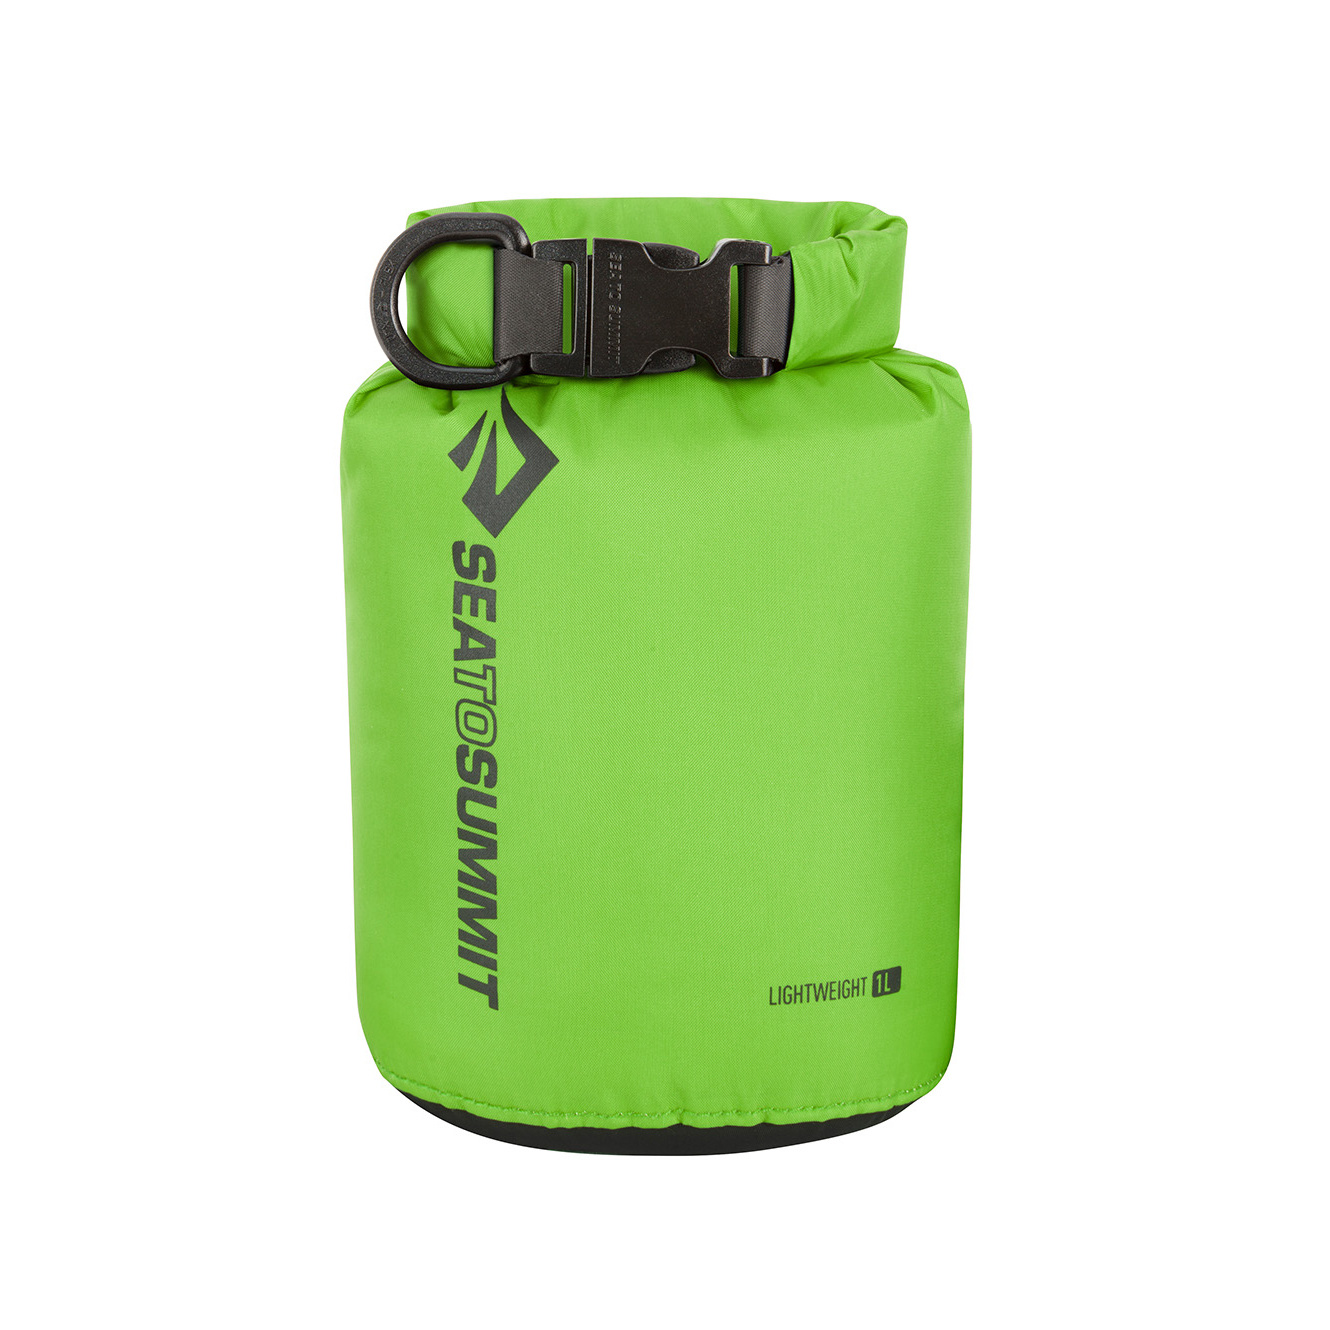 Sea to Summit Lightweight DrySack, 1 Liter